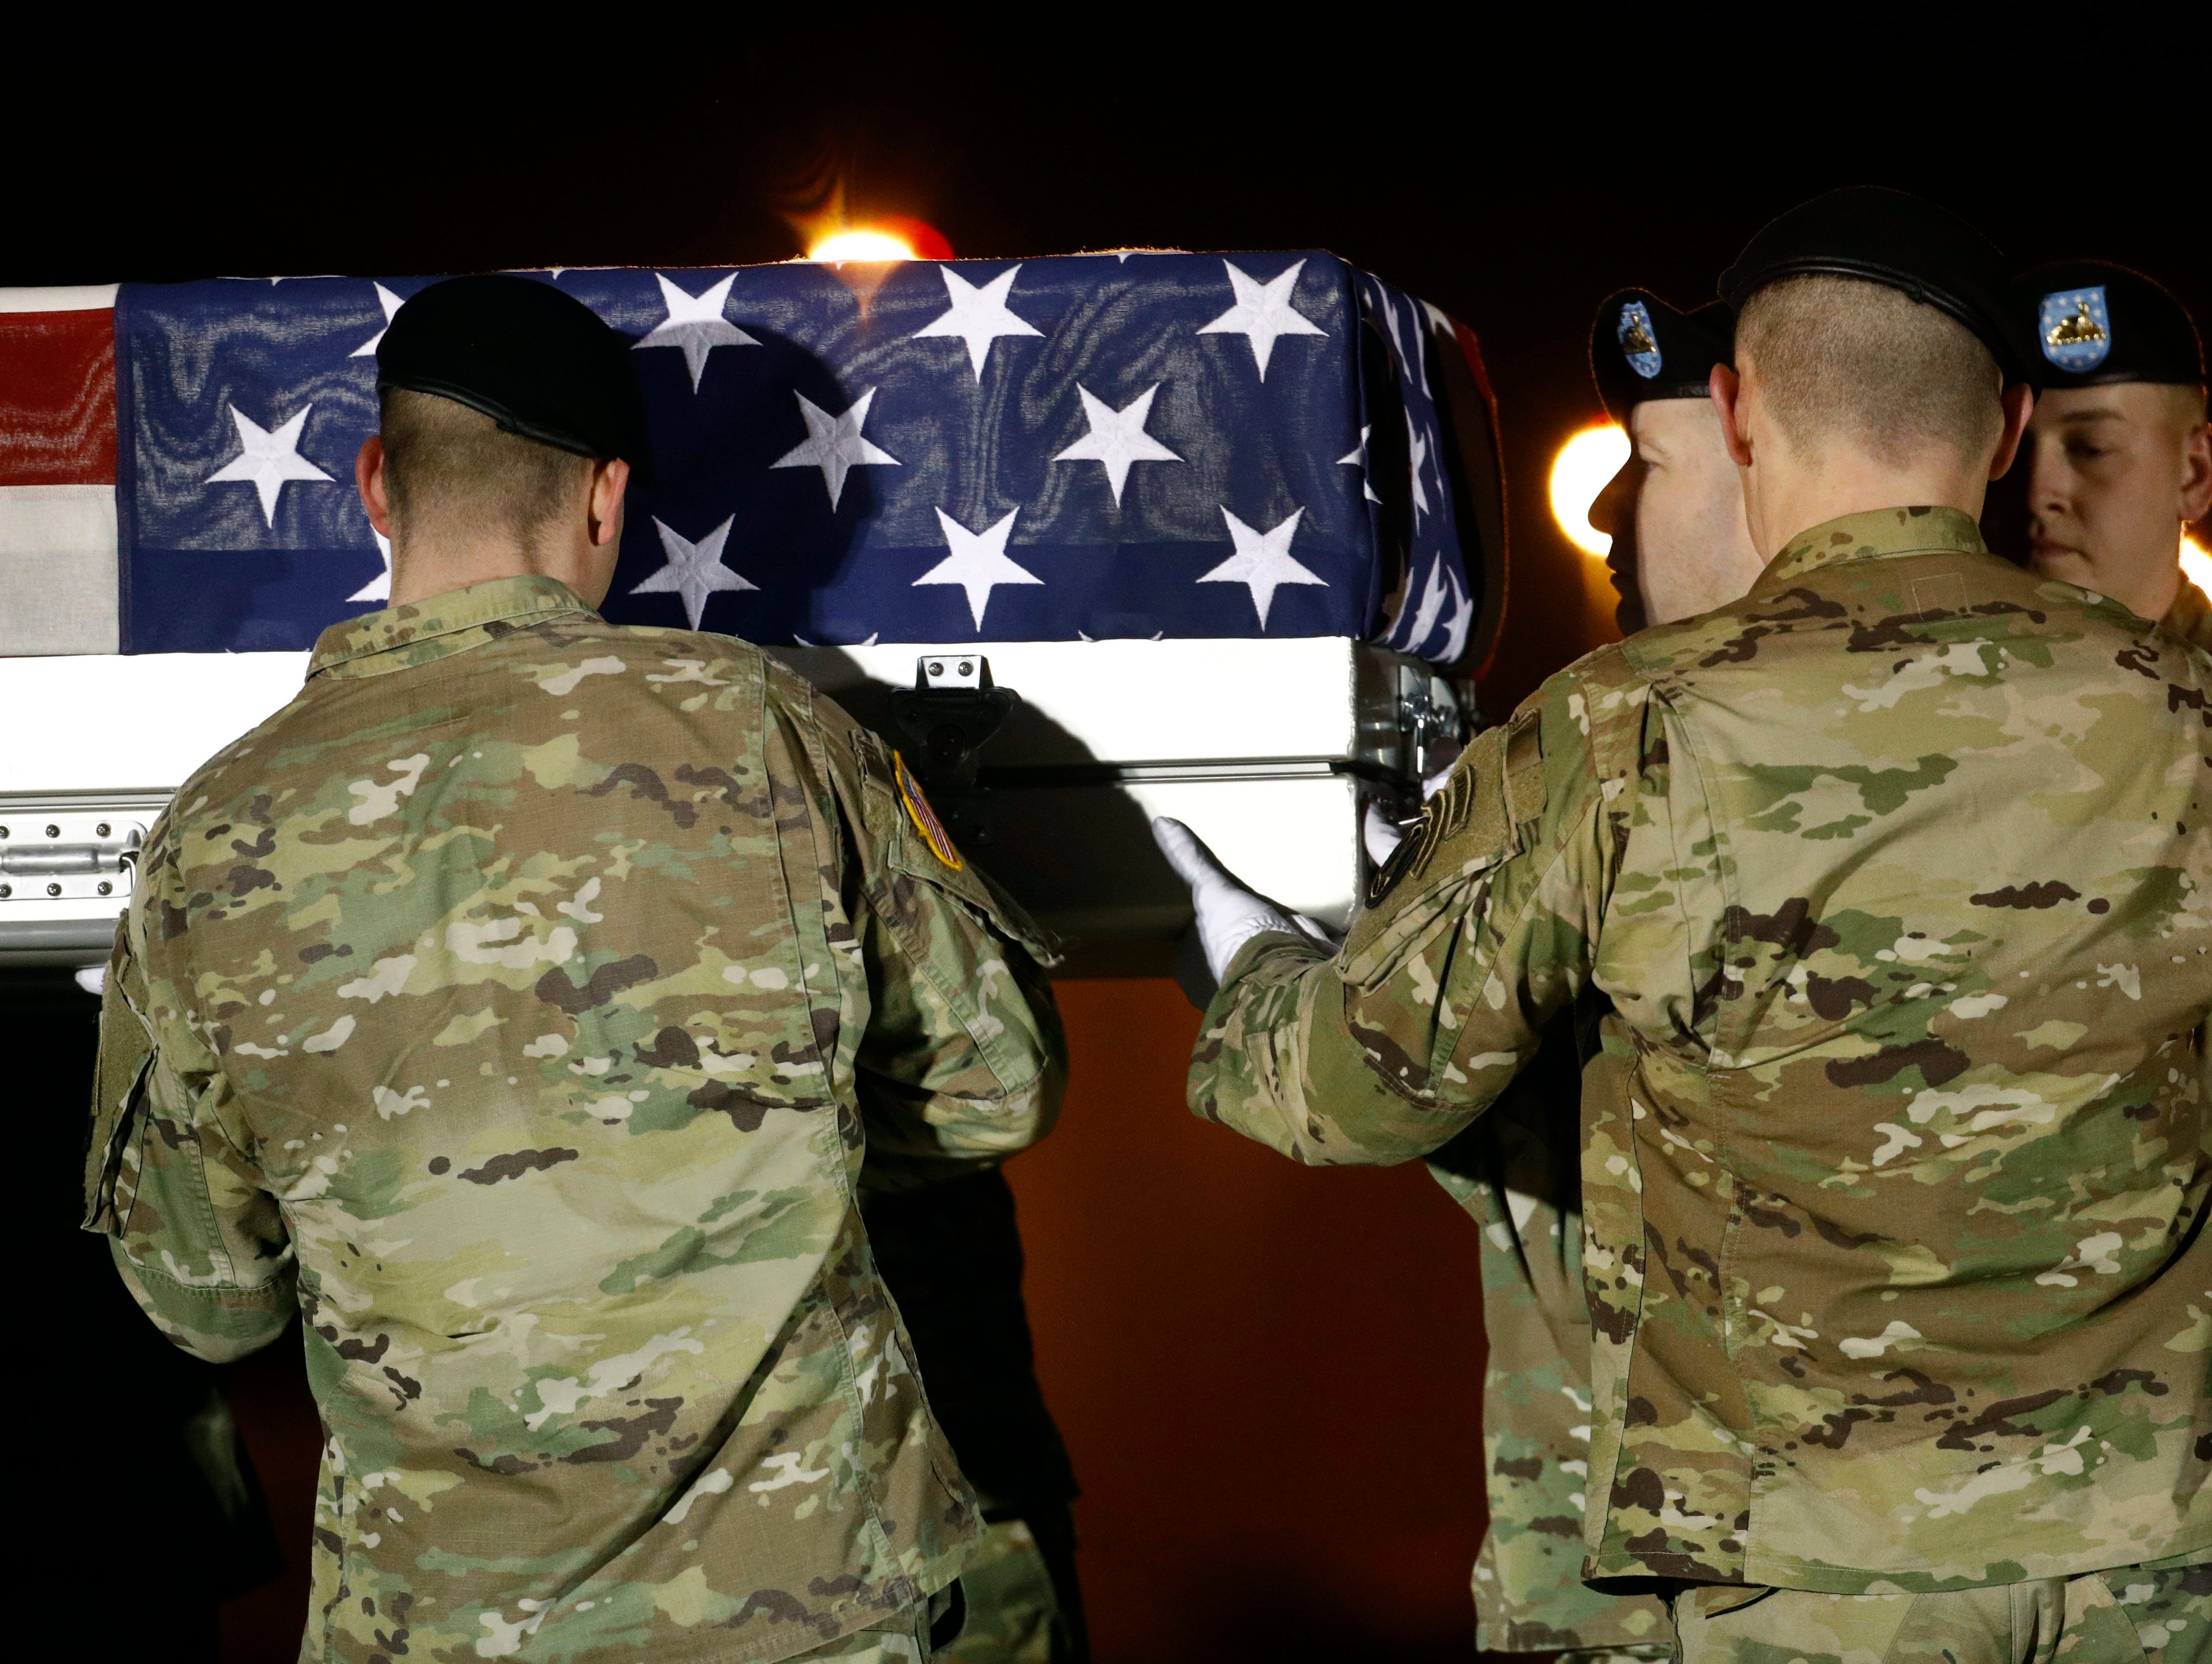 A U.S. Army carry team loads a transfer case containing the remains of Capt. Andrew P. Ross into a vehicle, Friday, Nov. 30, 2018, at Dover Air Force Base, Del. According to the Department of Defense, Ross, 29, of Lexington, Va., was killed Nov. 27, 2018, by a roadside bomb in Andar, Ghazni Province, Afghanistan.